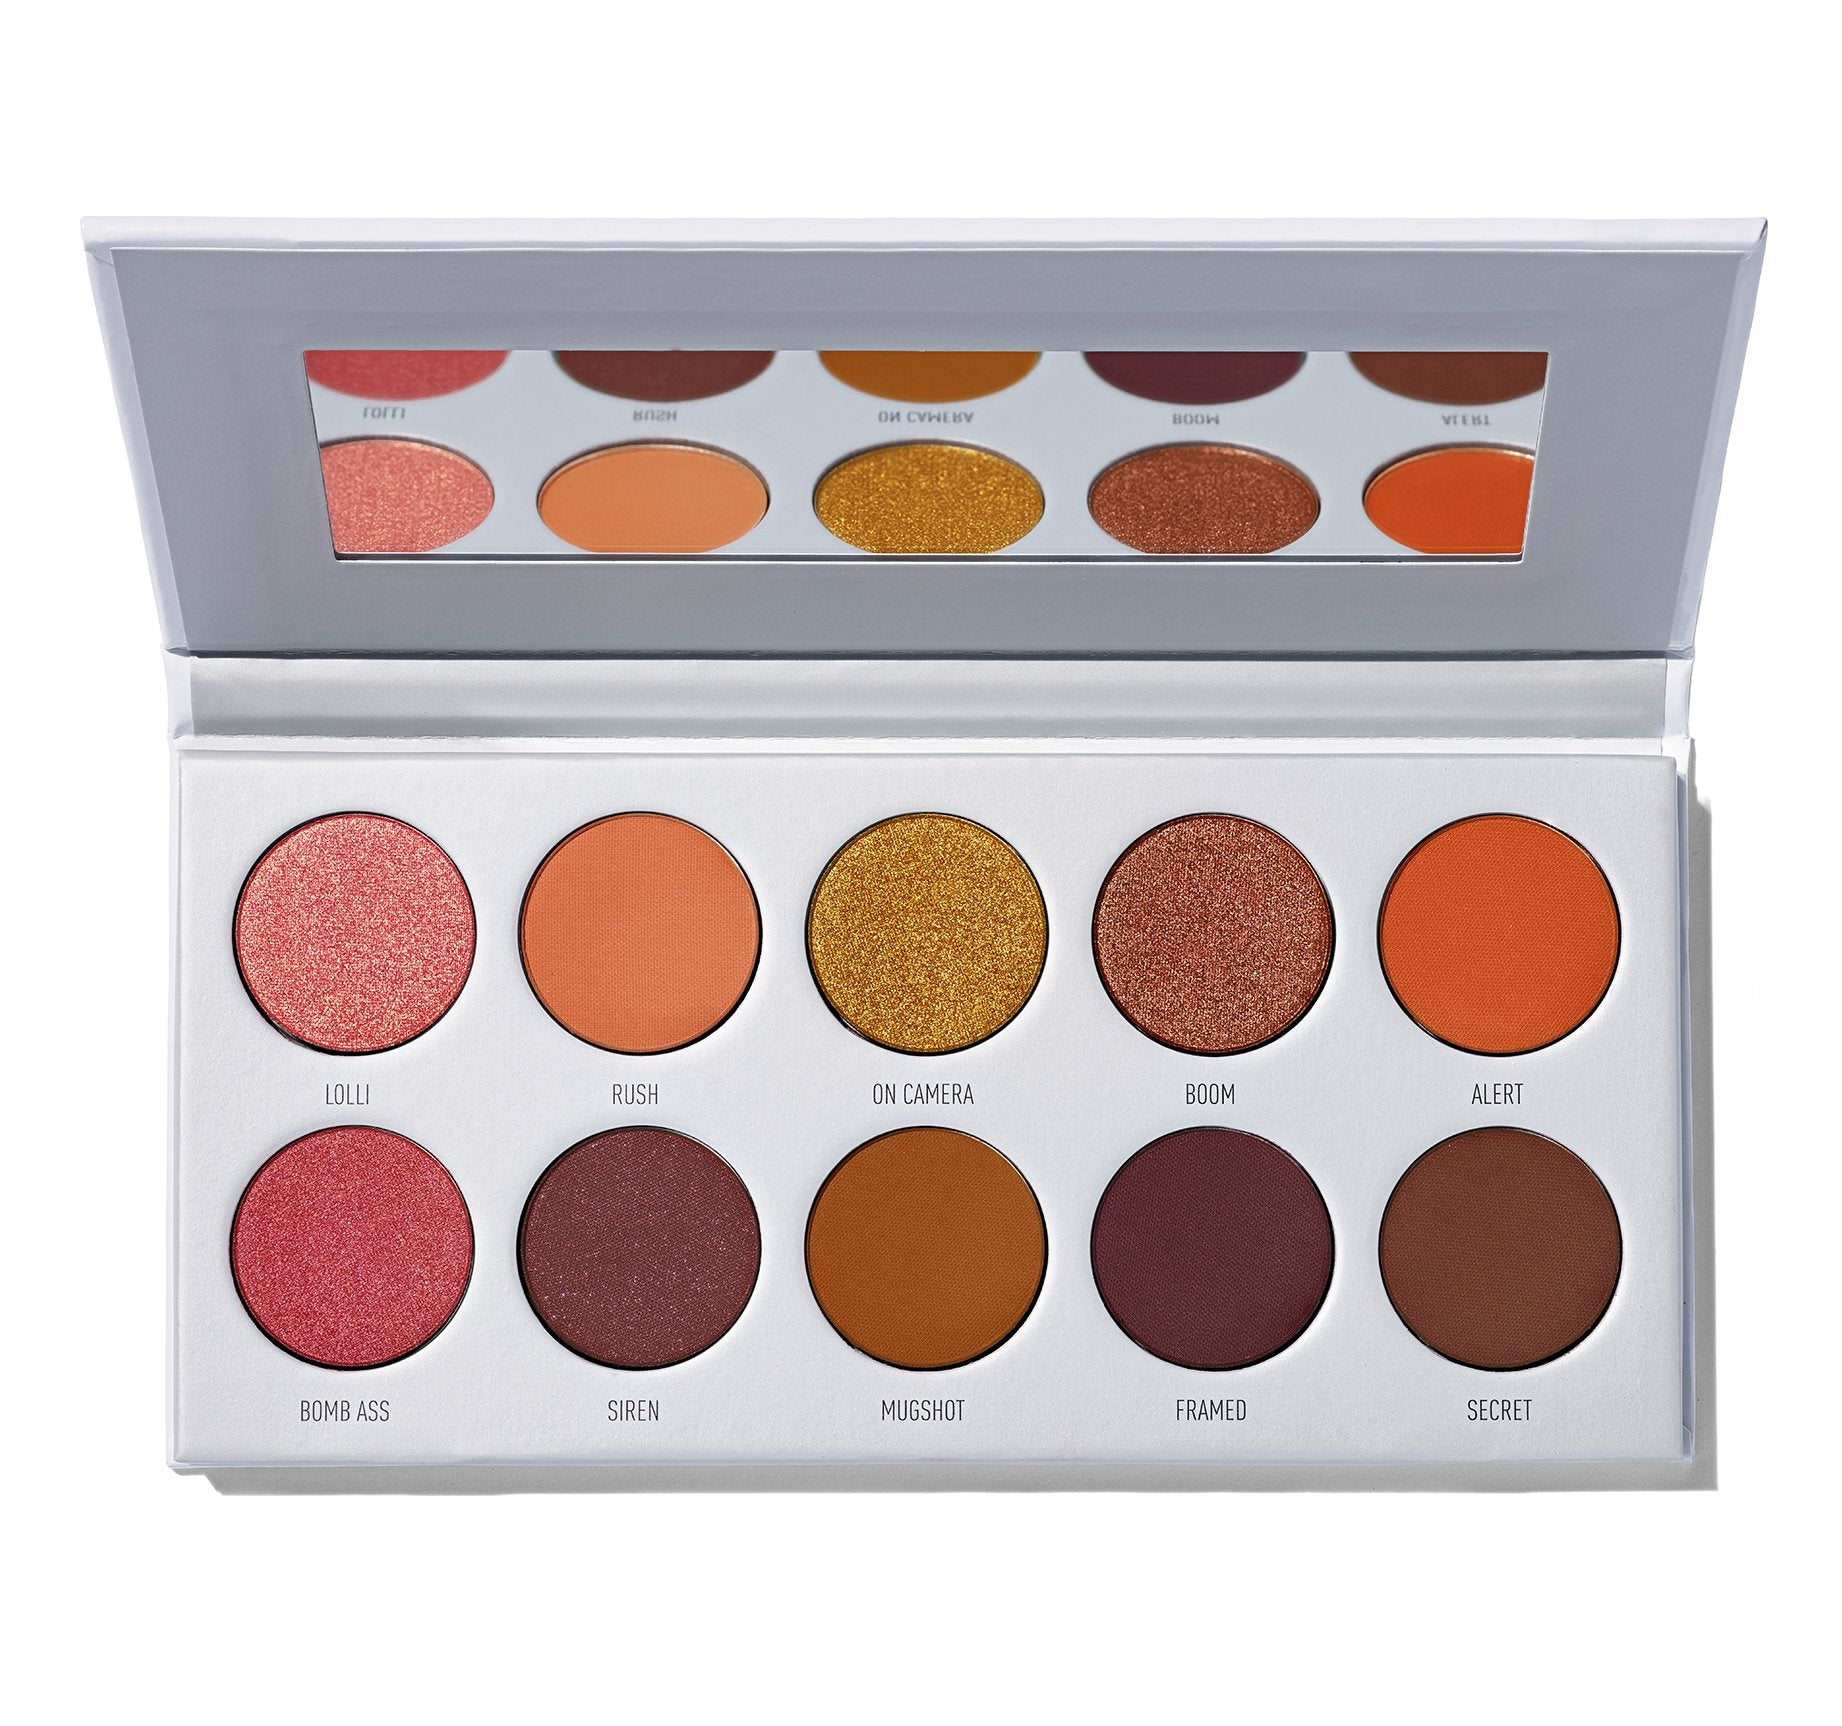 MORPHE X JACLYN HILL RING THE ALARM EYESHADOW PALETTE, view larger image